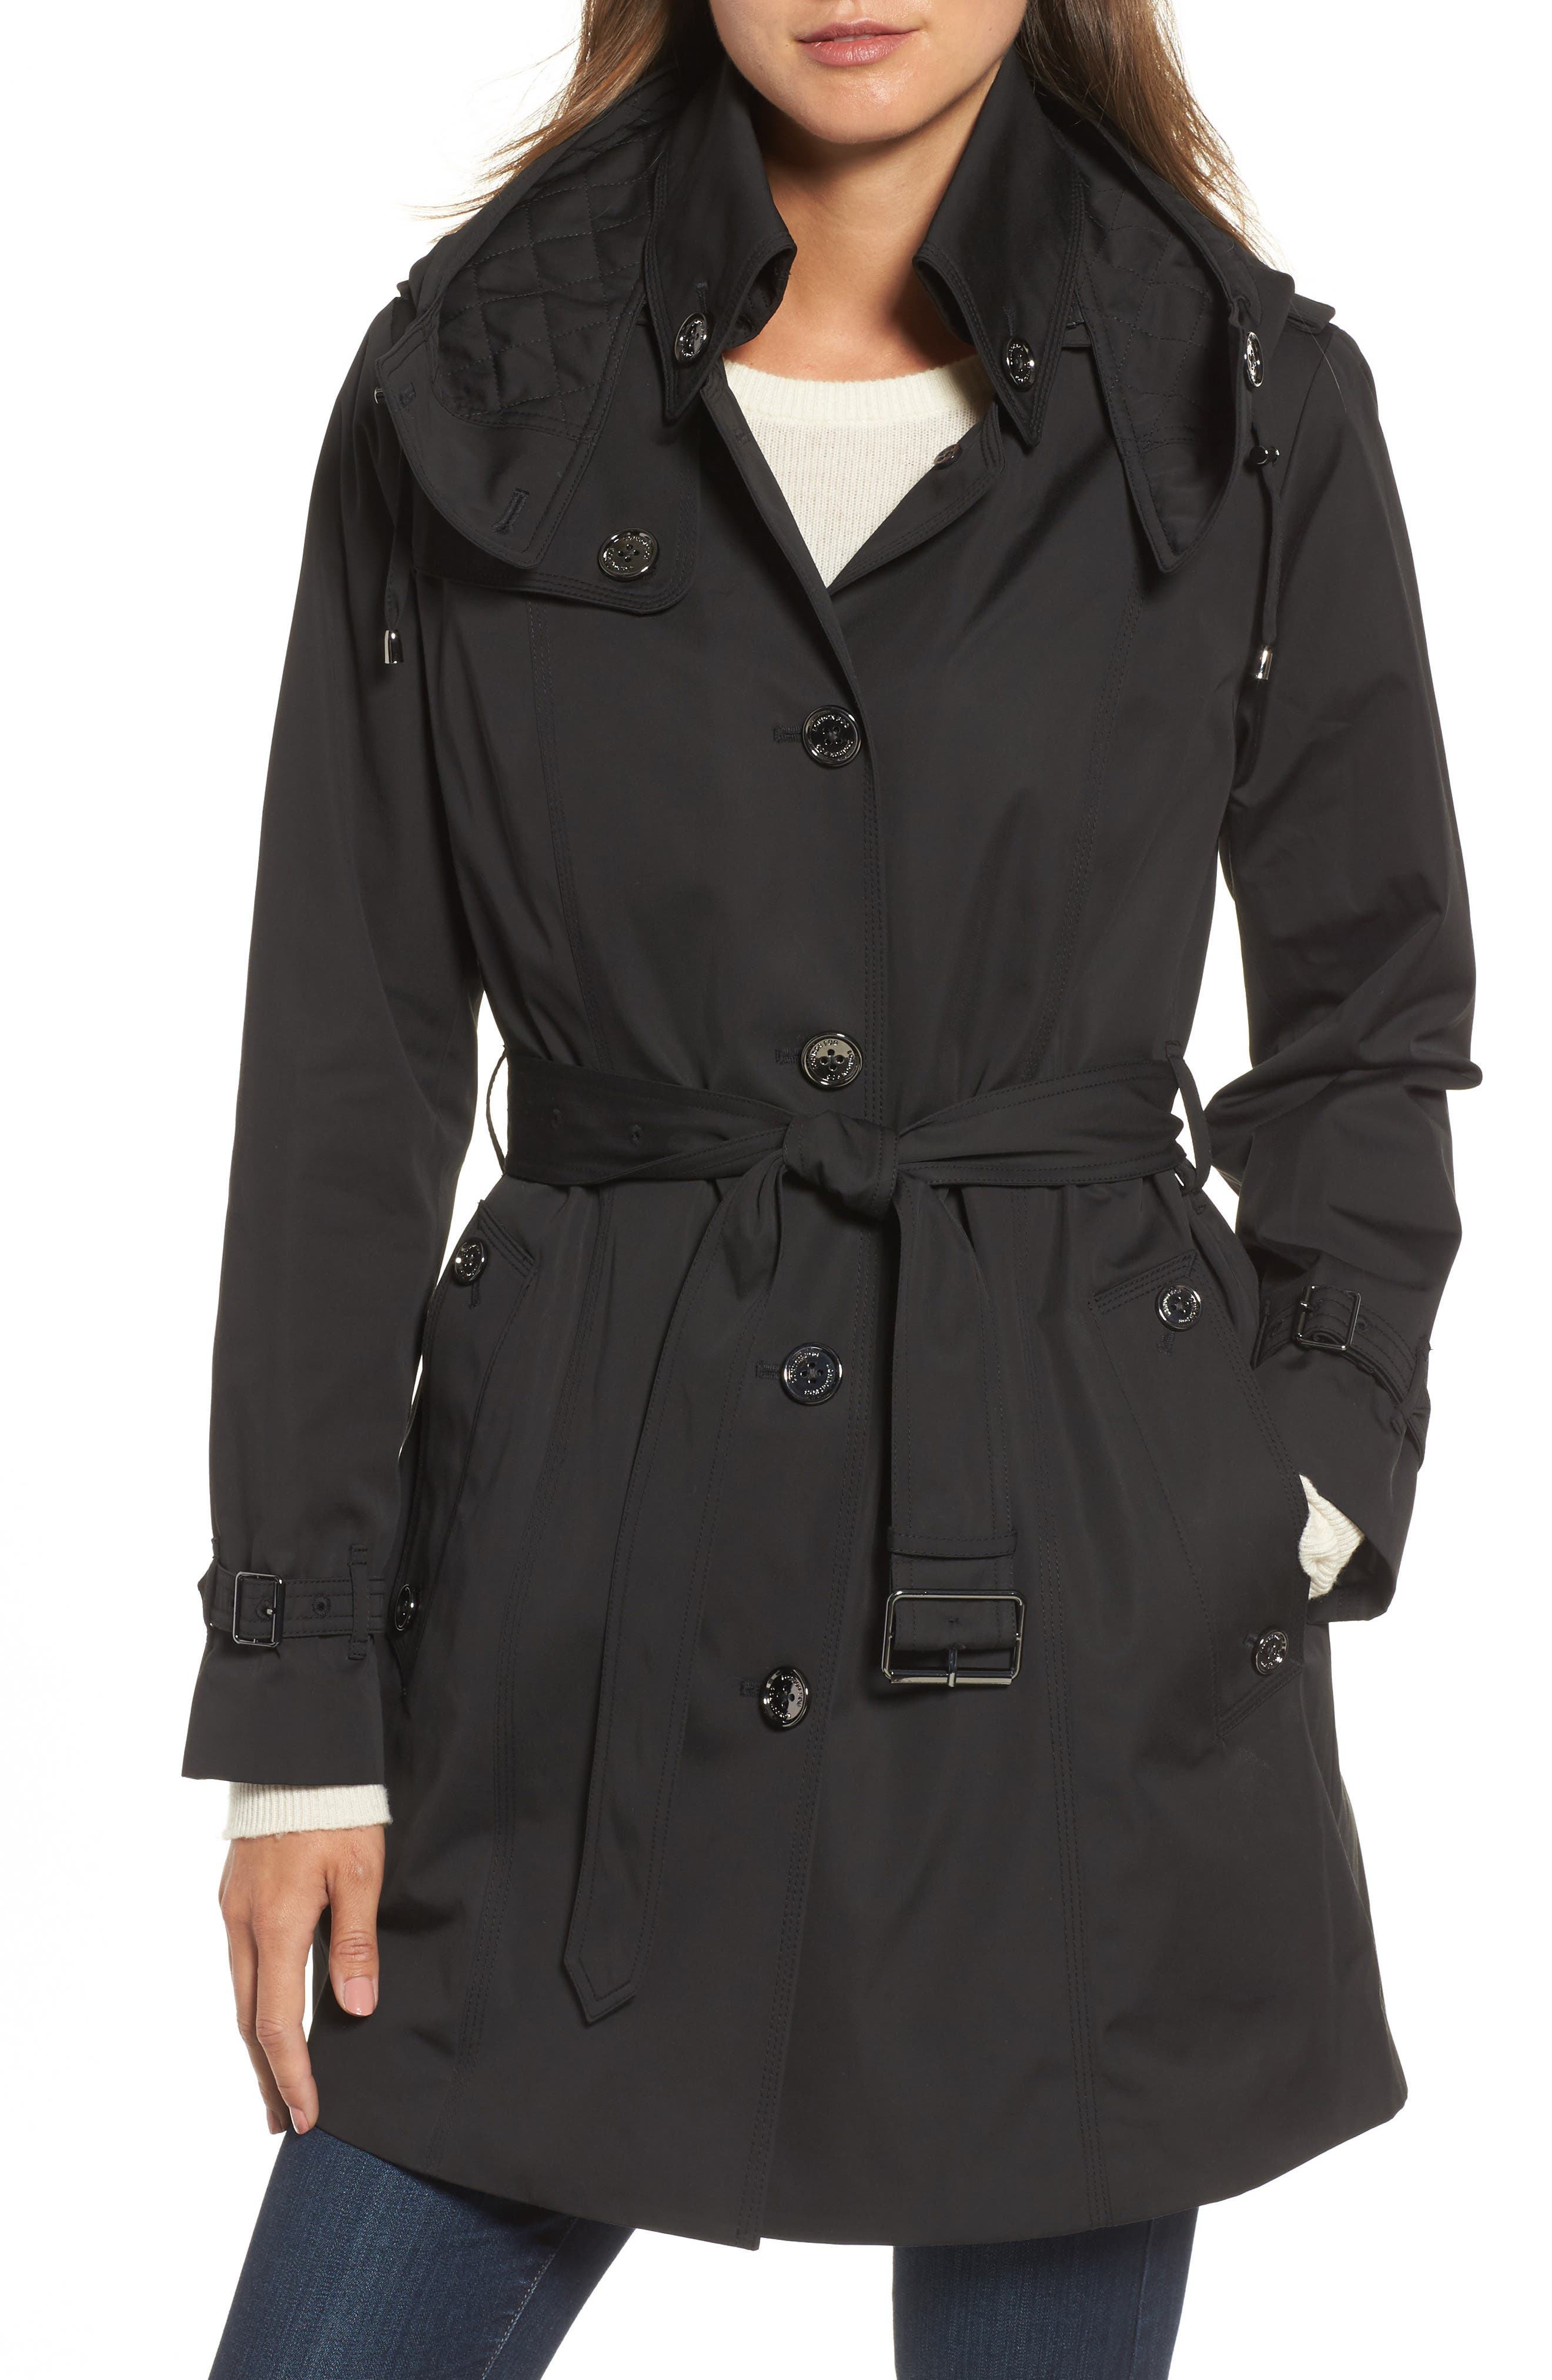 Short Trench Coat,                         Main,                         color, 001